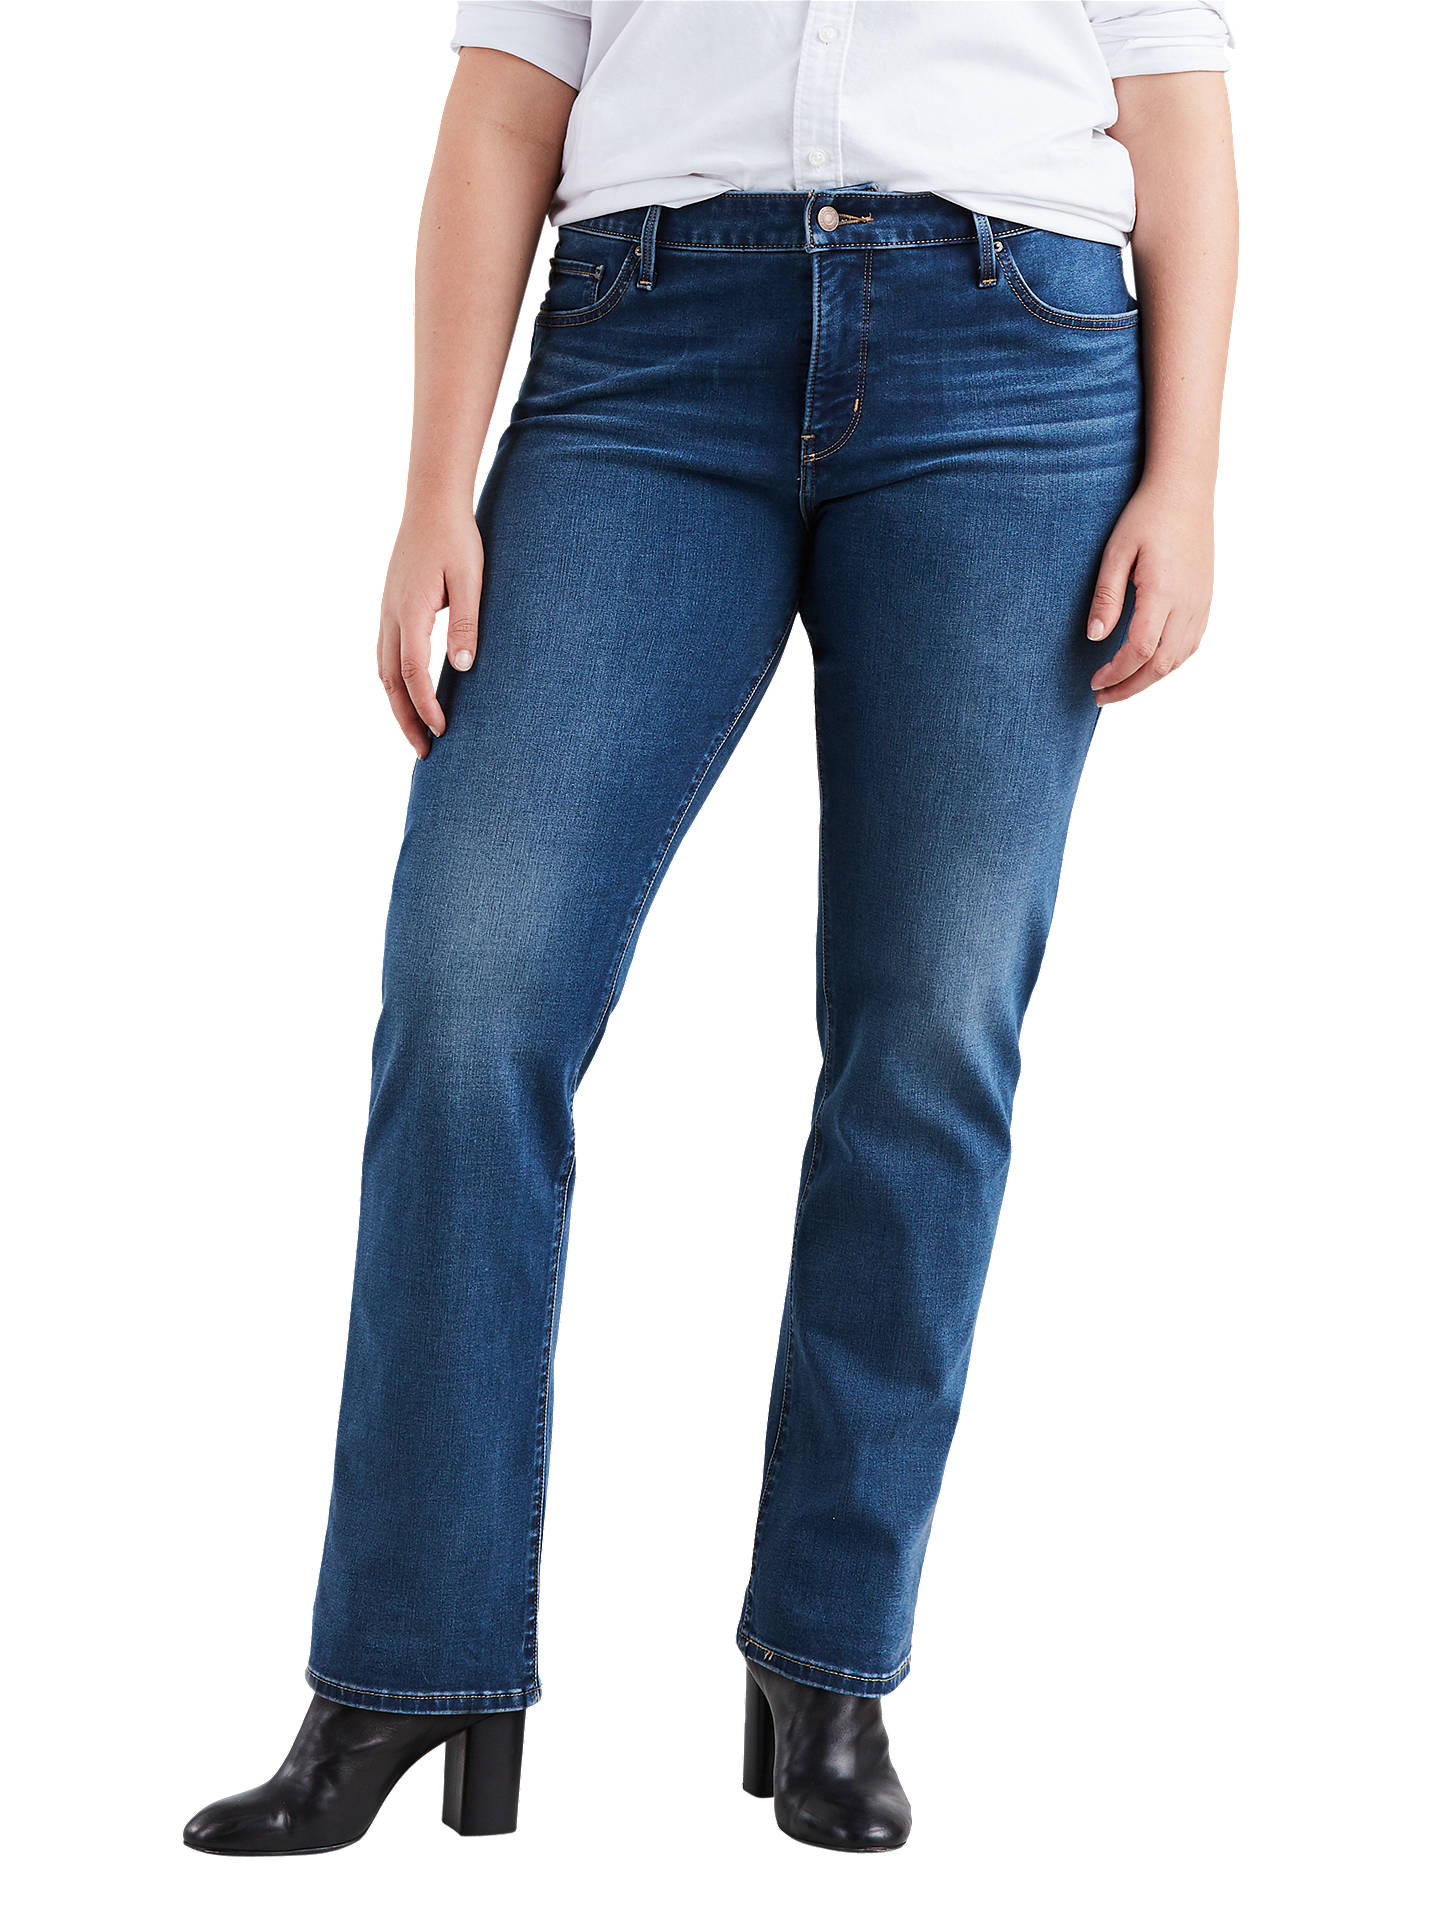 264b29d52040 Buy Levi's Plus 314 Shaping Straight Jeans, Shaker Maker, 20 Online at  johnlewis.